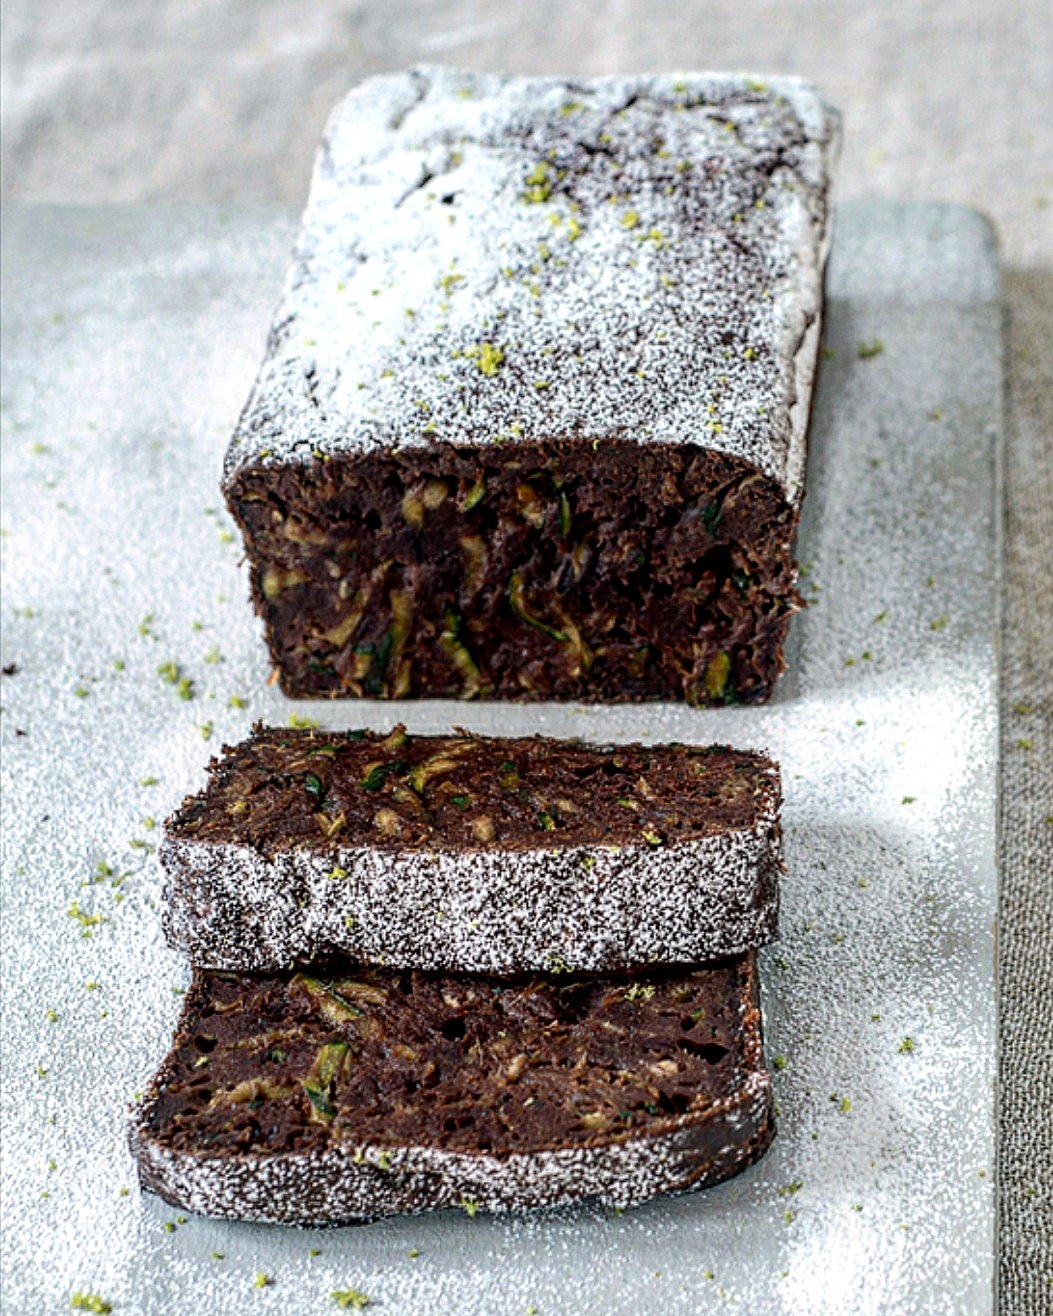 Courgette Chocolate Cake recipe by Jack Monroe